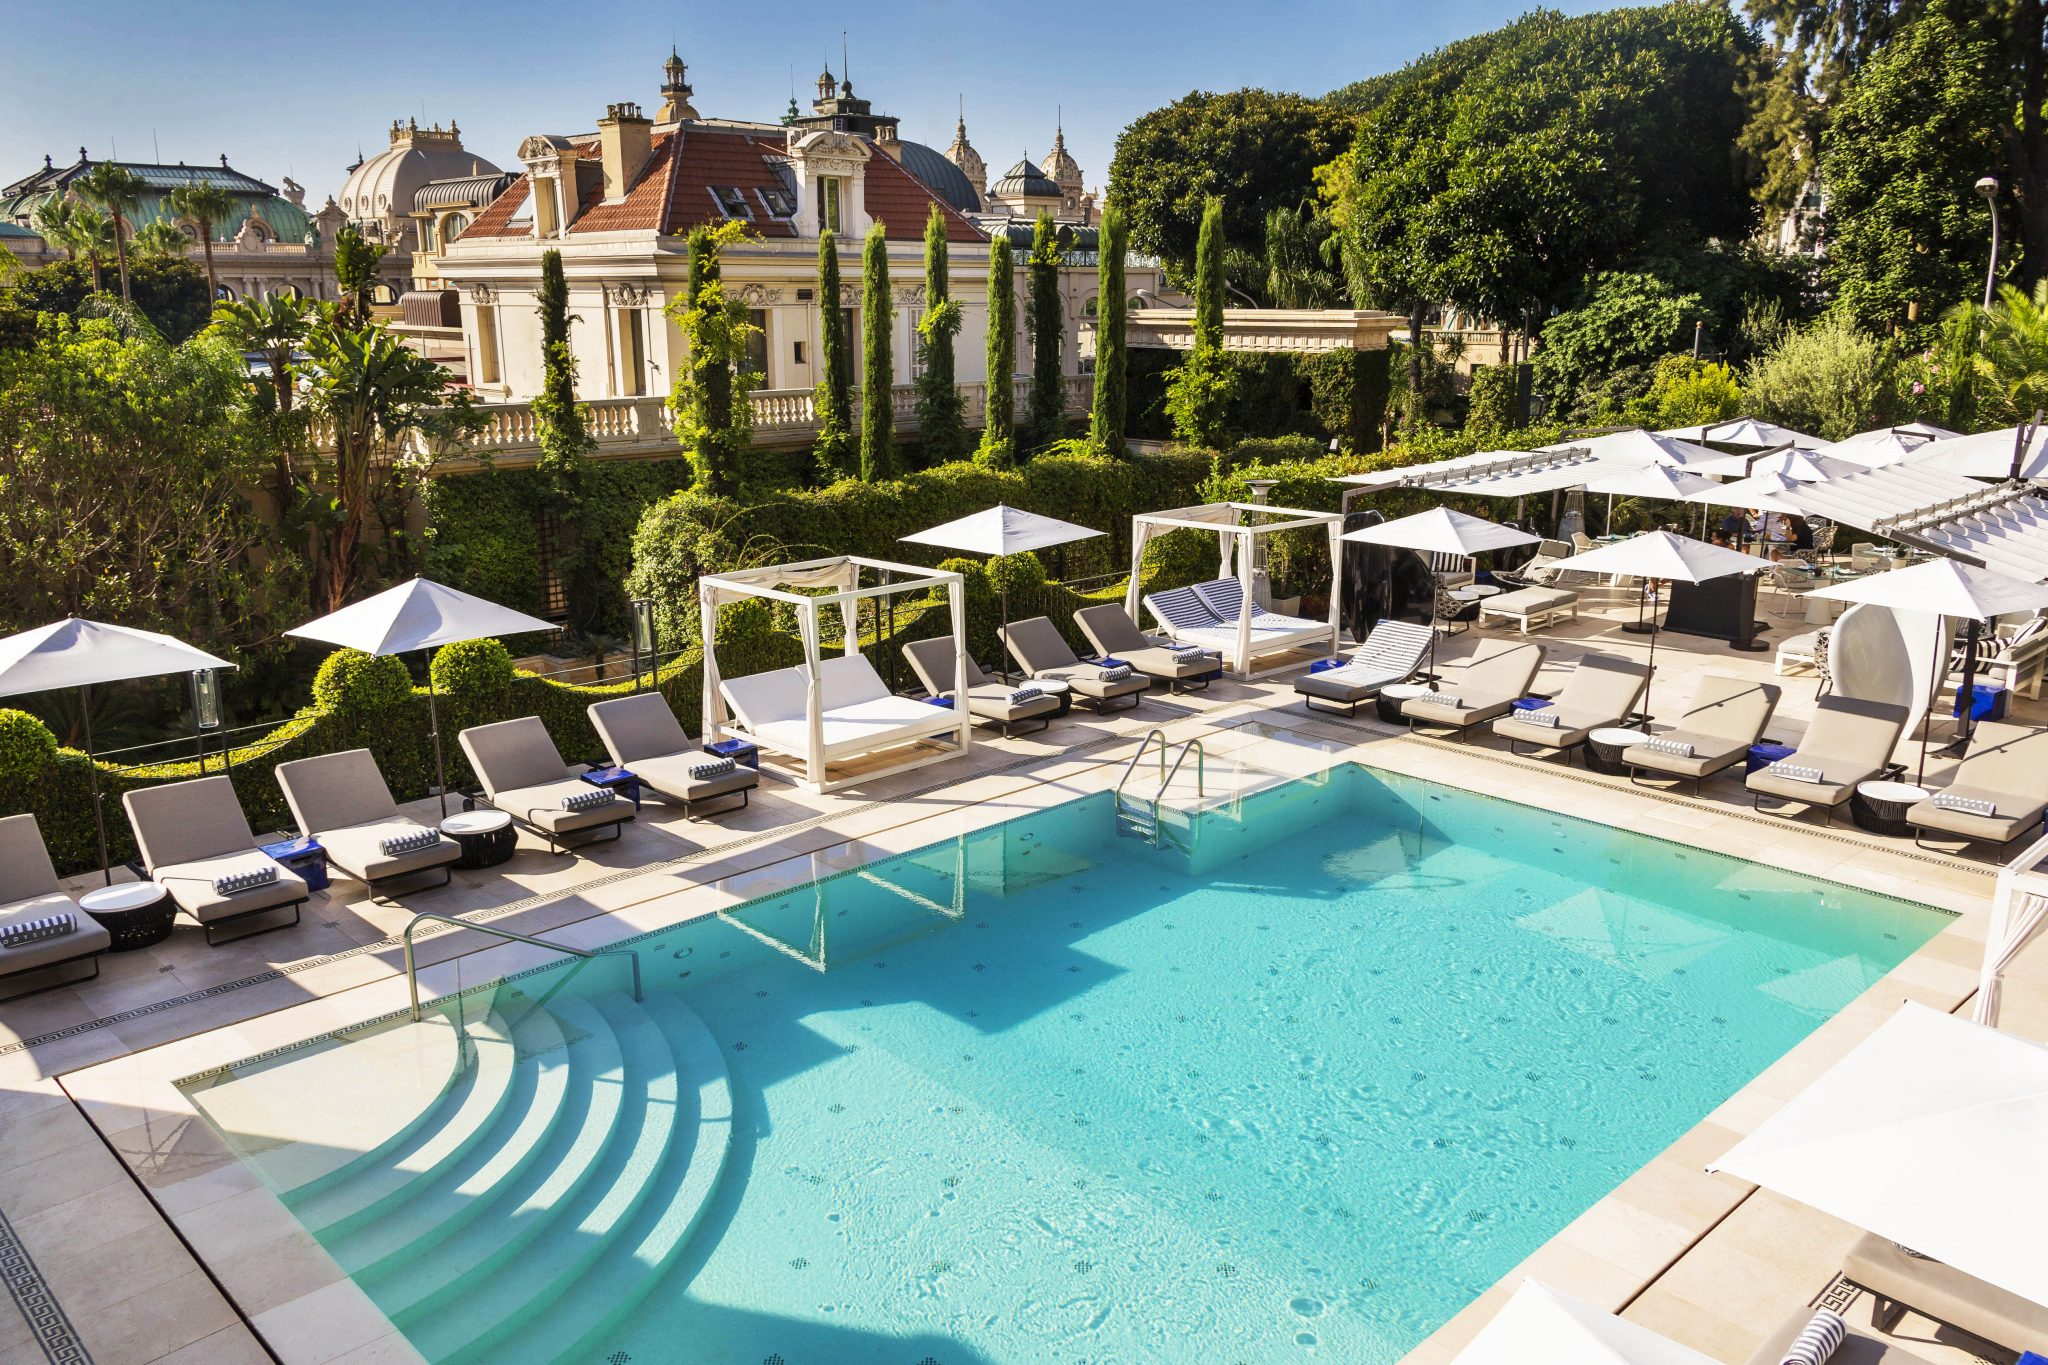 Hotel Metropole, Monte-Carlo (2018) - 5-Star Hotel For Families